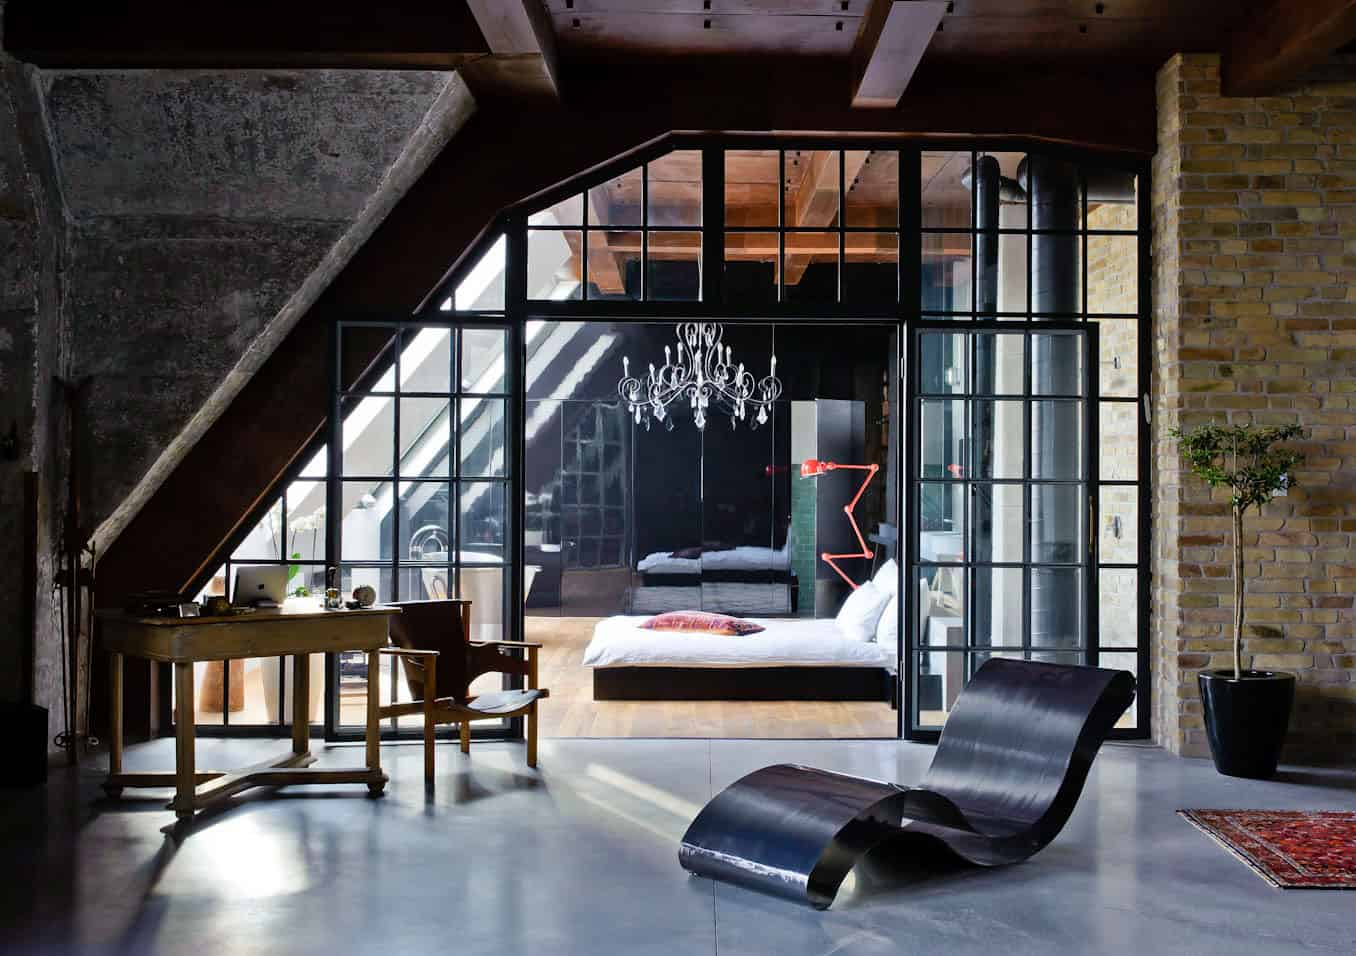 Eclectic loft apartment in budapest by shay sabag for Bedroom door ideas loft apartment